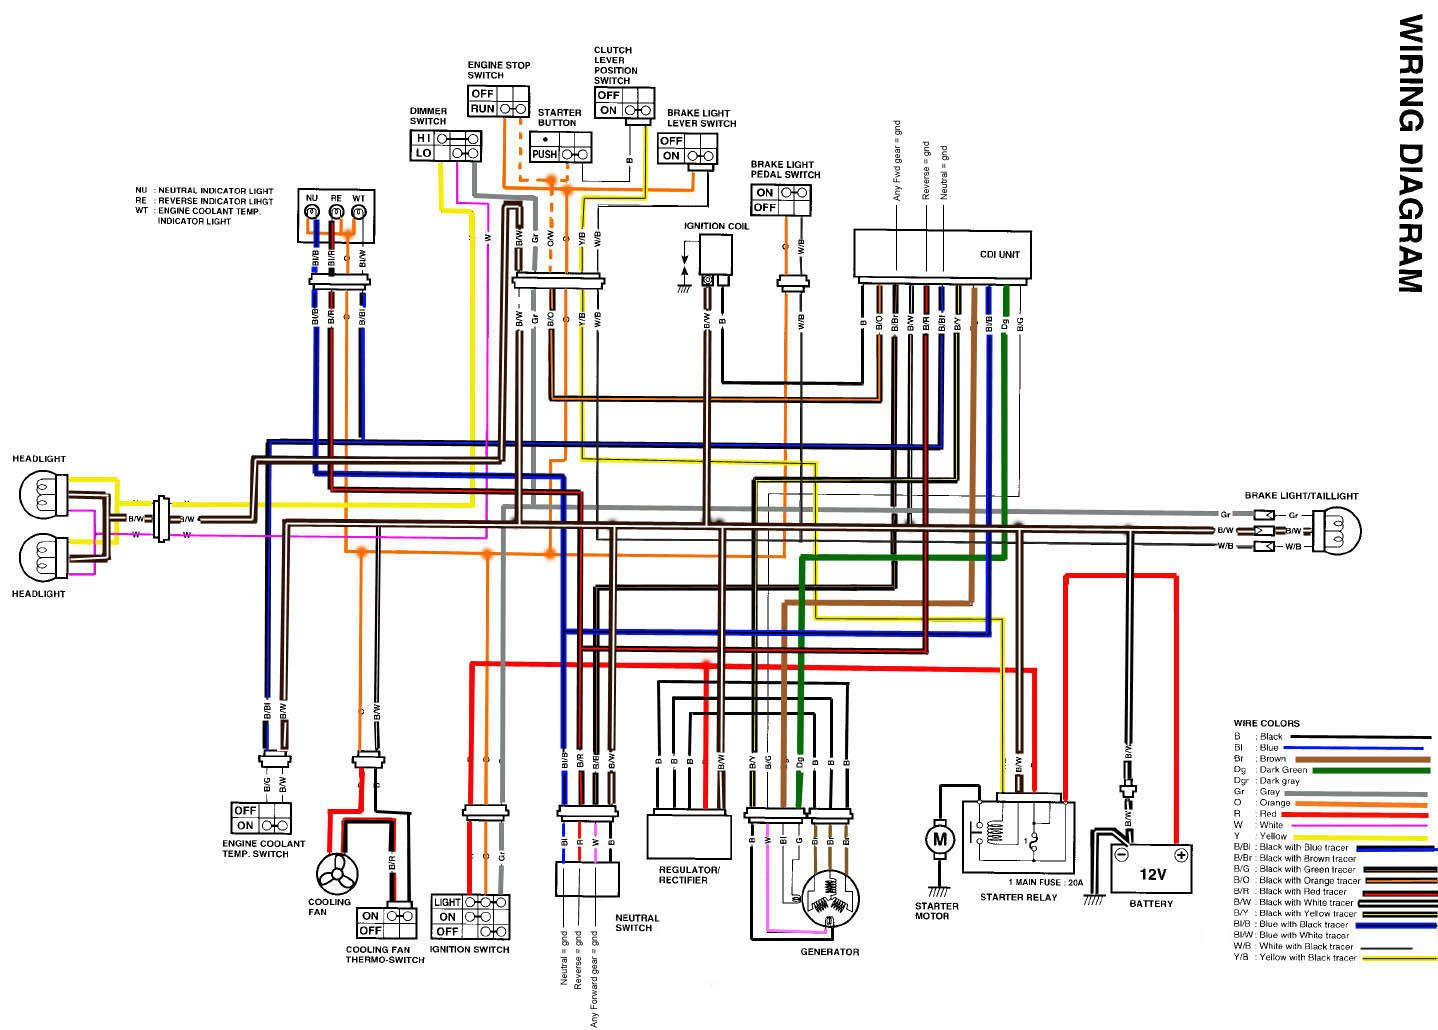 Zuzuki 400 Electrical Wiring Diagram Yamaha Diagram